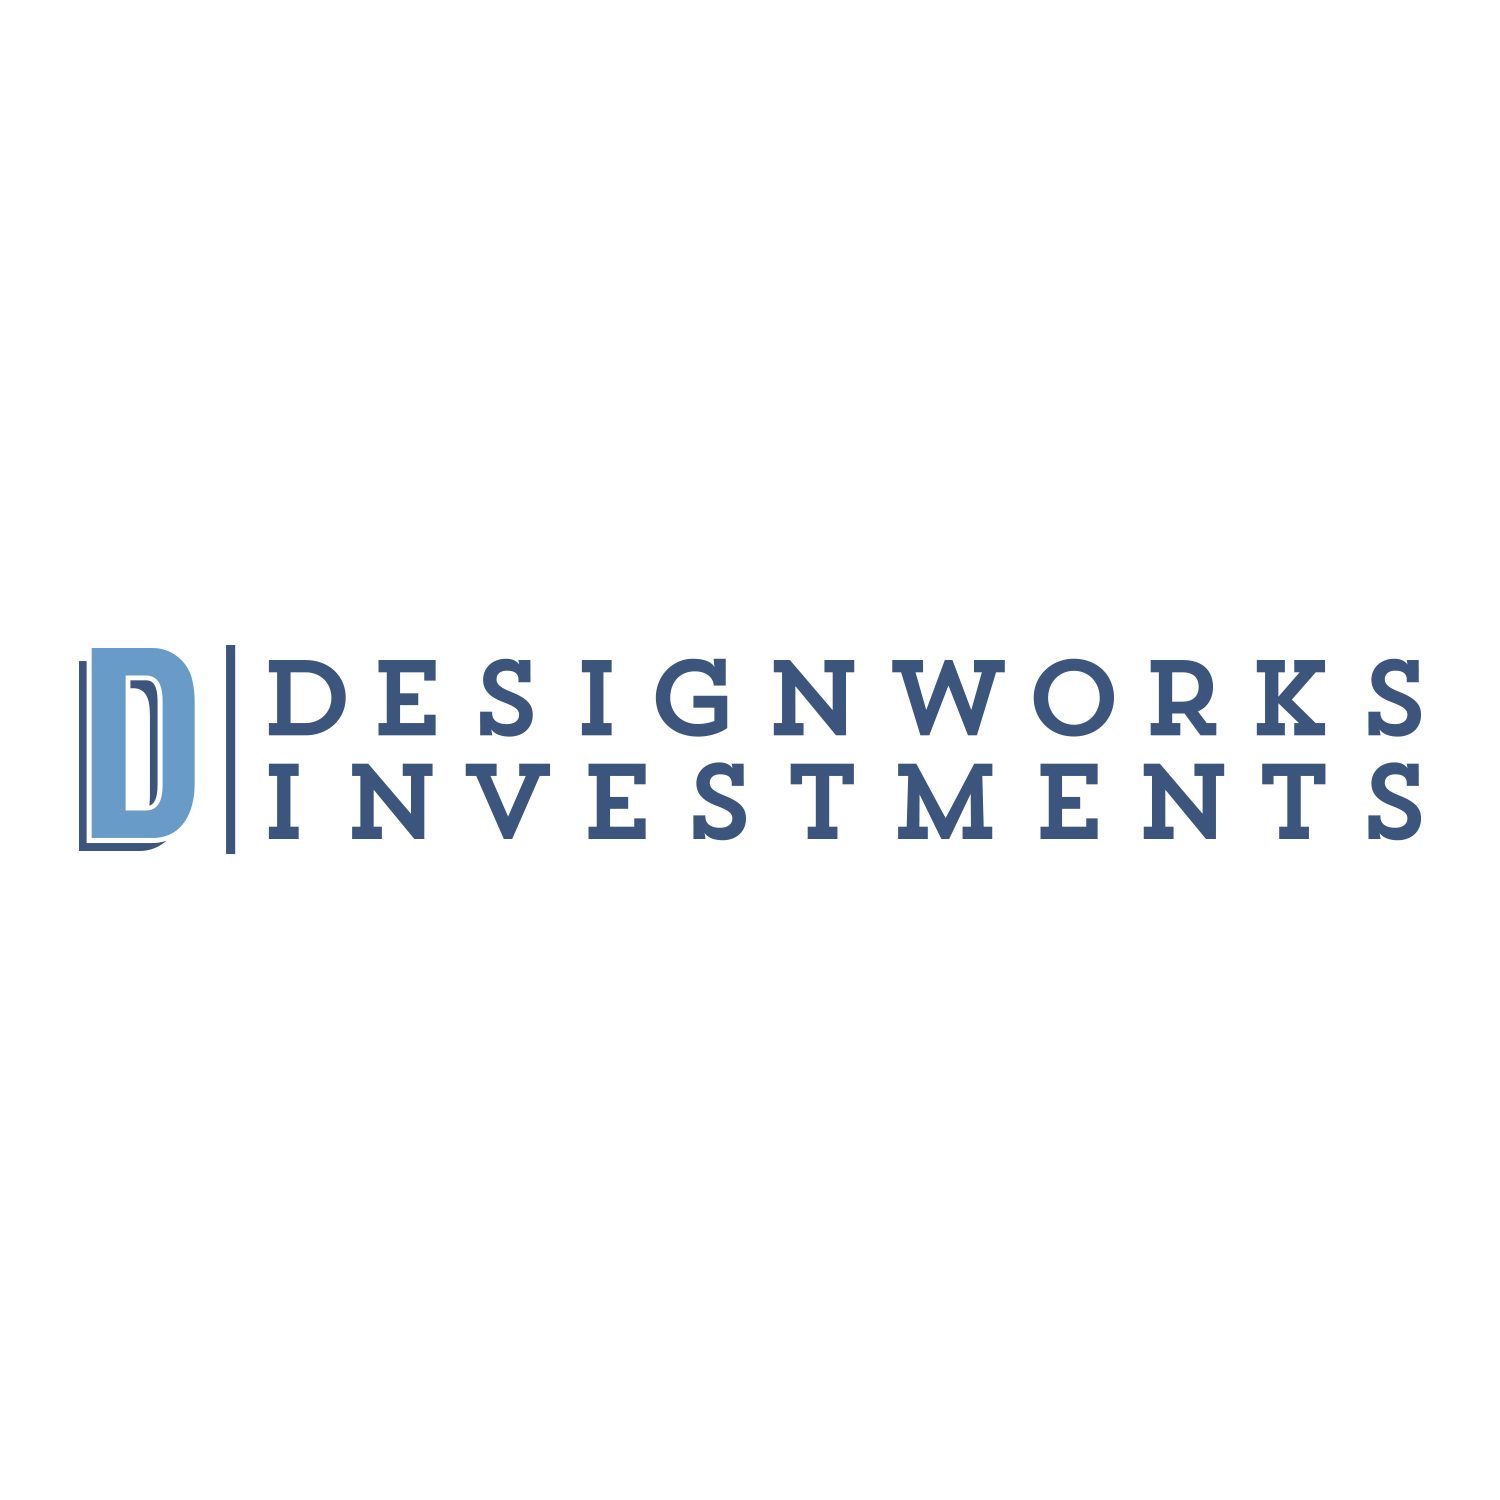 Design works investments forex trading signal list